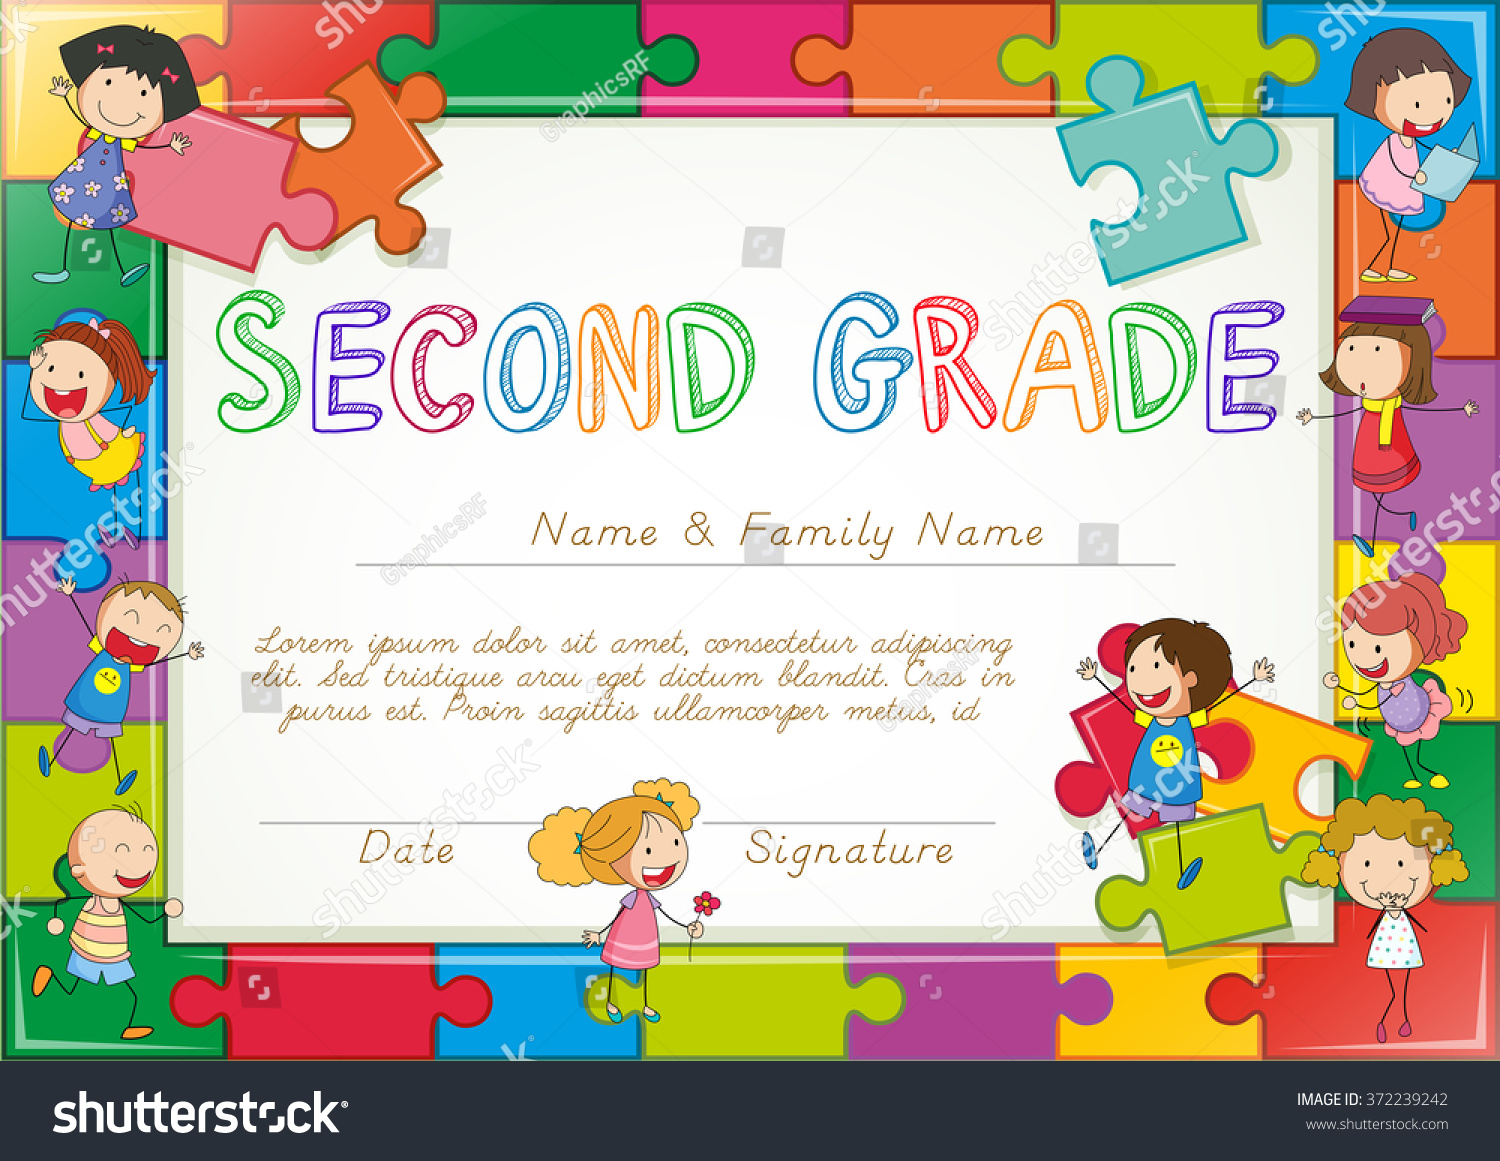 Certificate Template Second Grade Students Illustration – Santa Claus Certificate Template